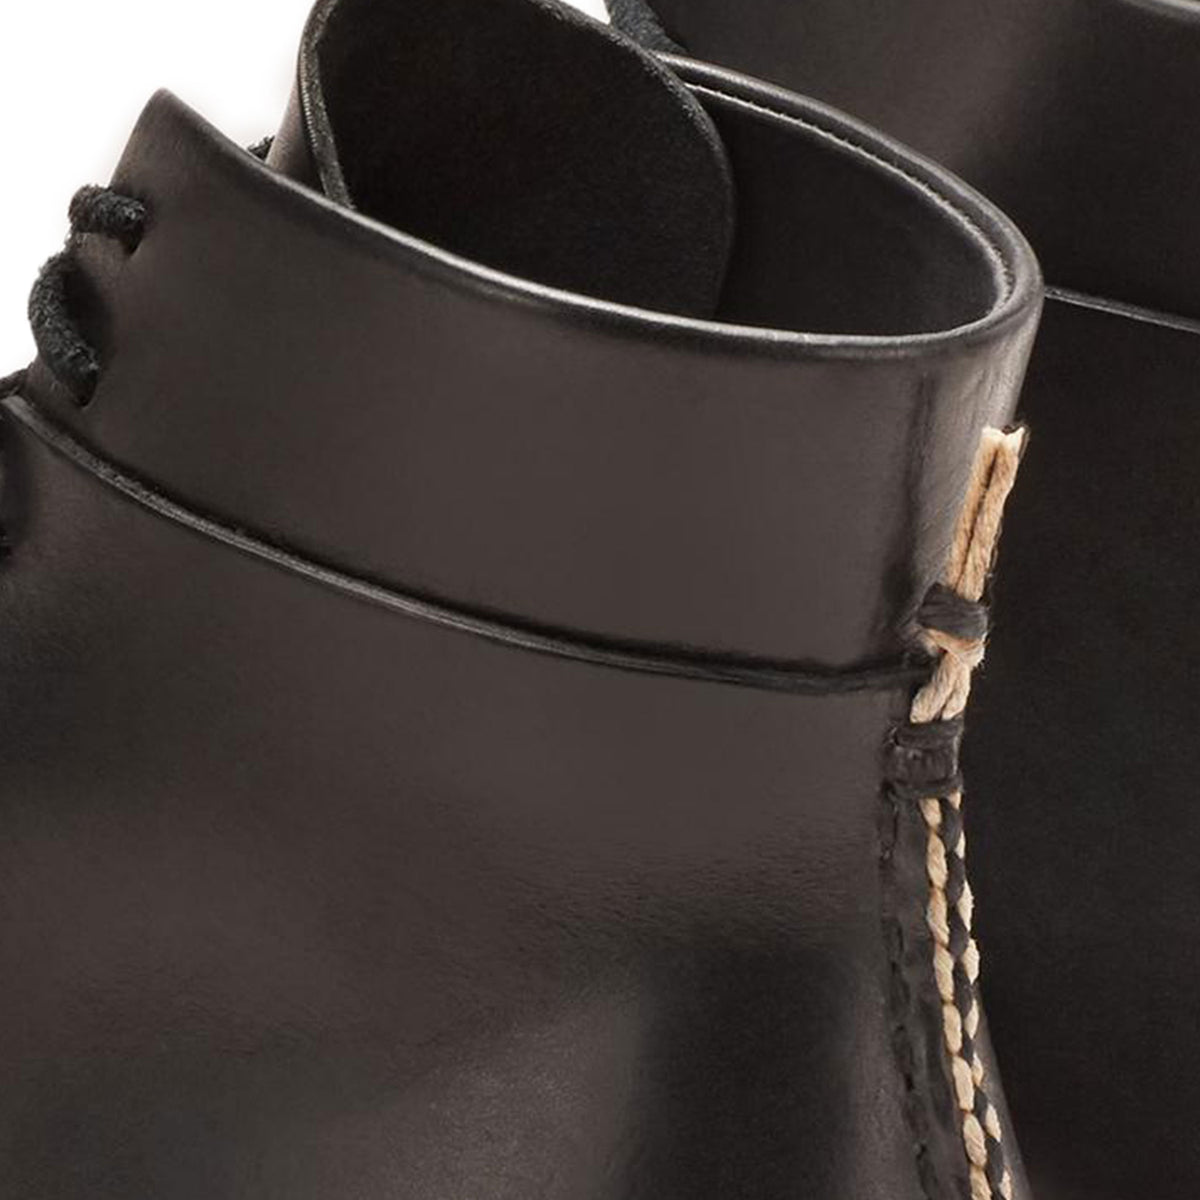 FEIT Braided Lace-Up Boots Shoes Leather Black Detail Braid